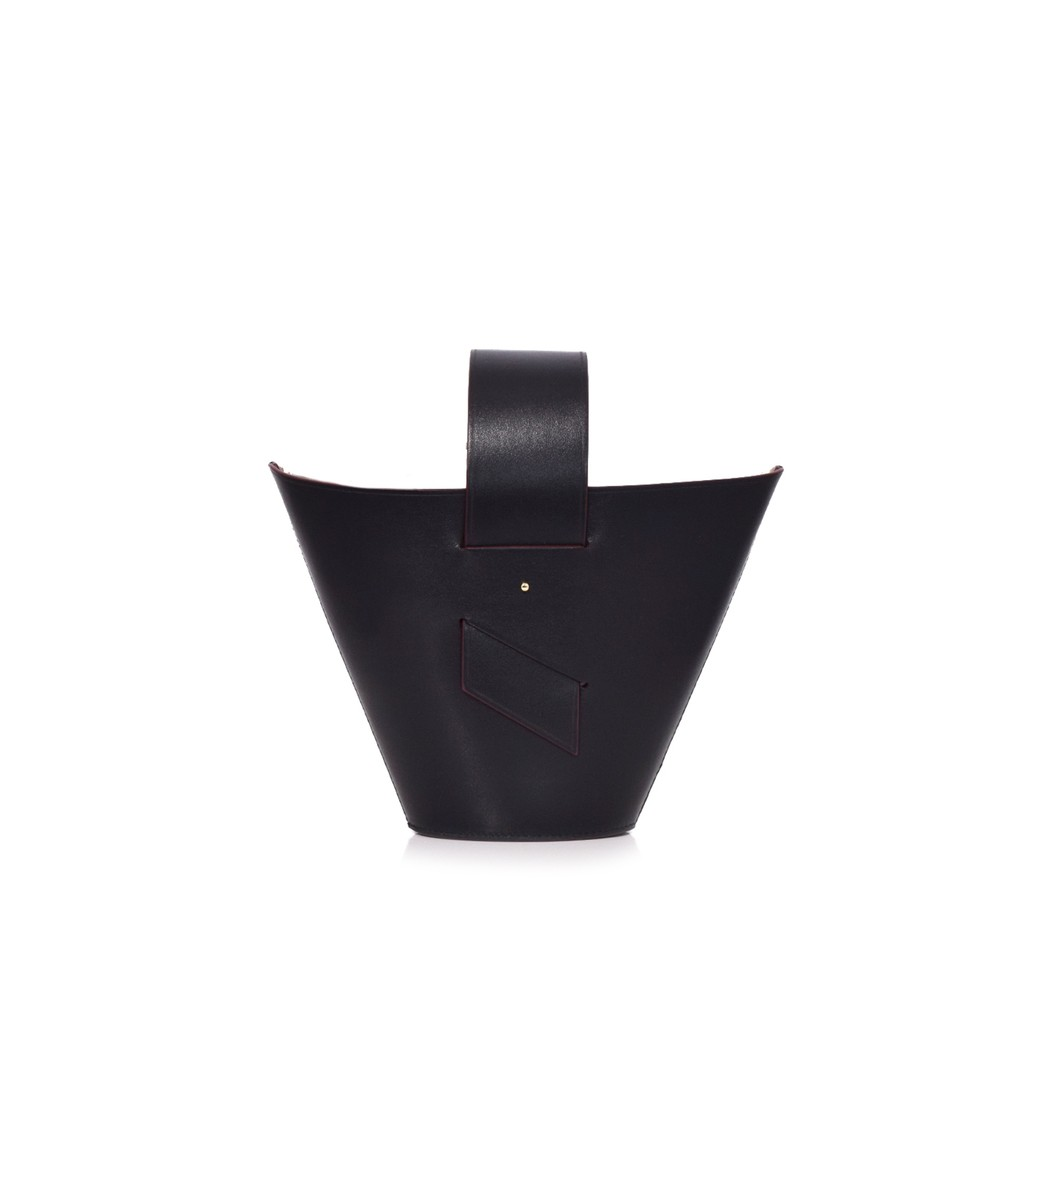 Black/Rust Amphora Bag